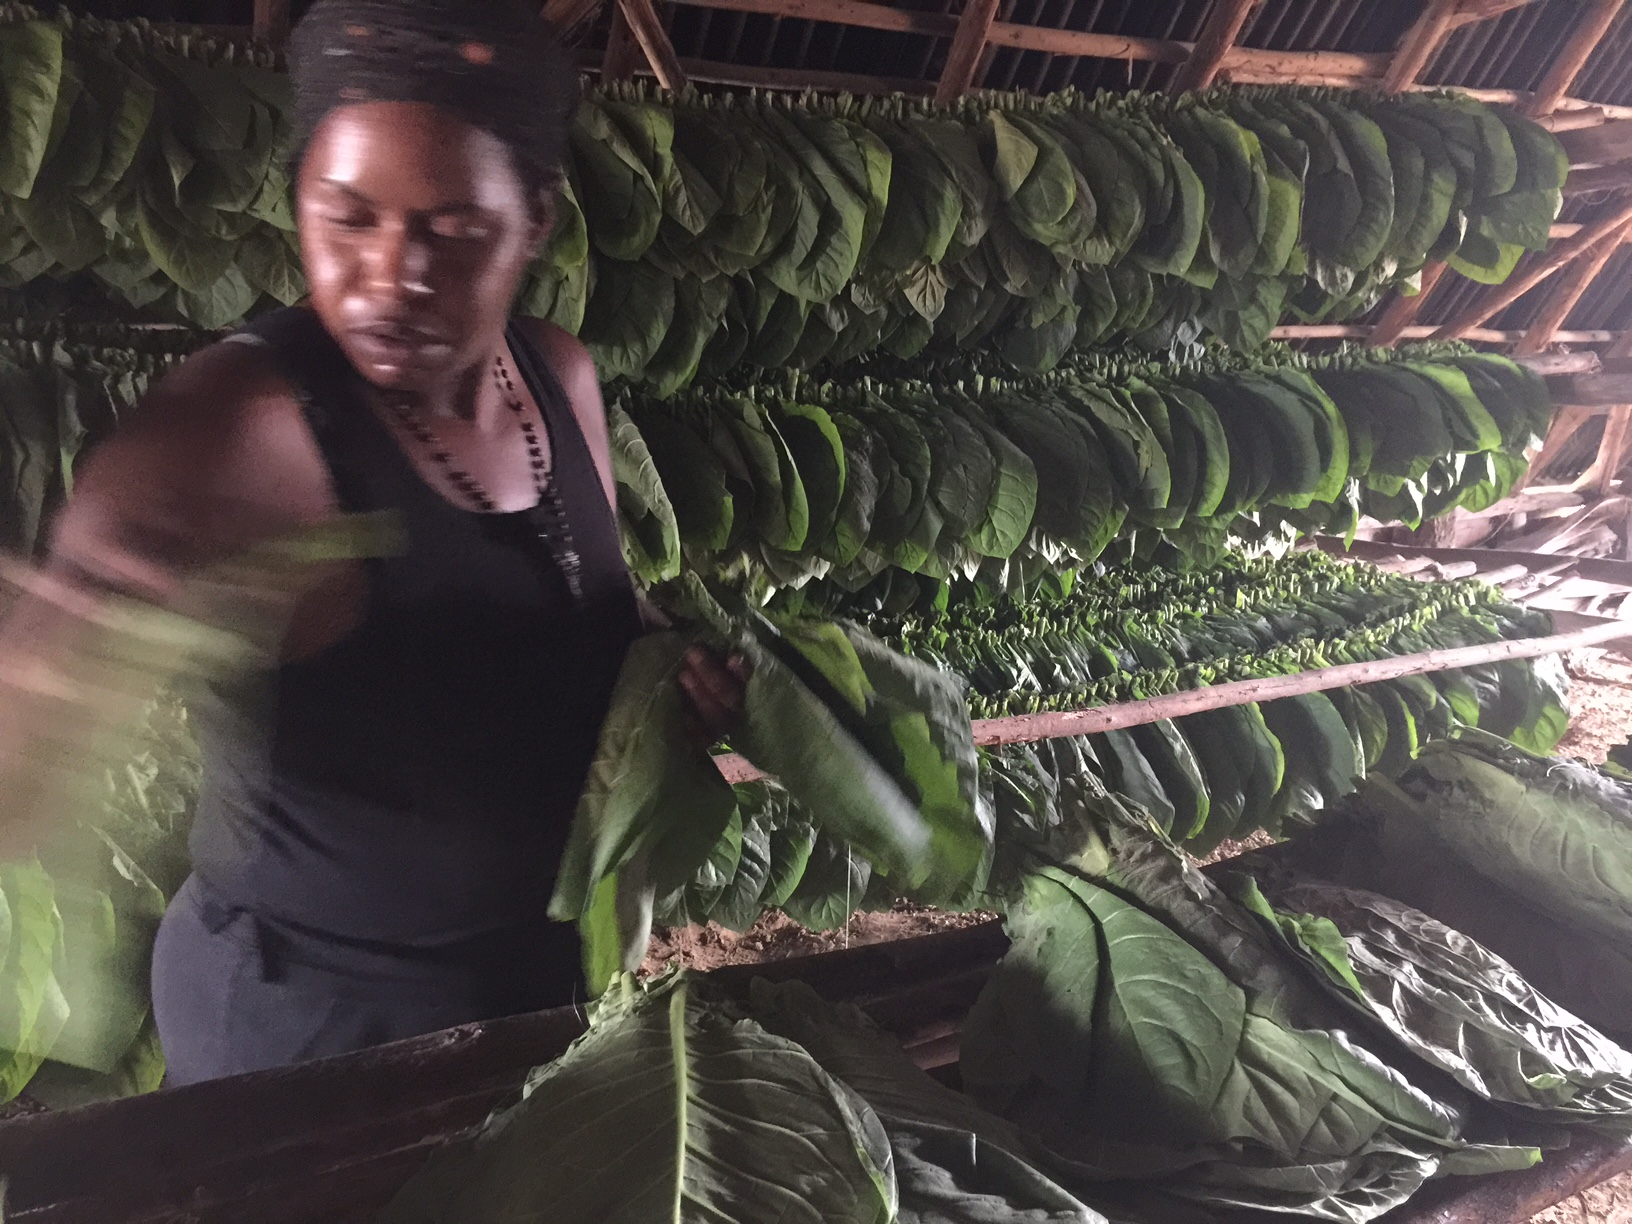 Inspecting, sorting tobacco leaves in a well ventilated barn.